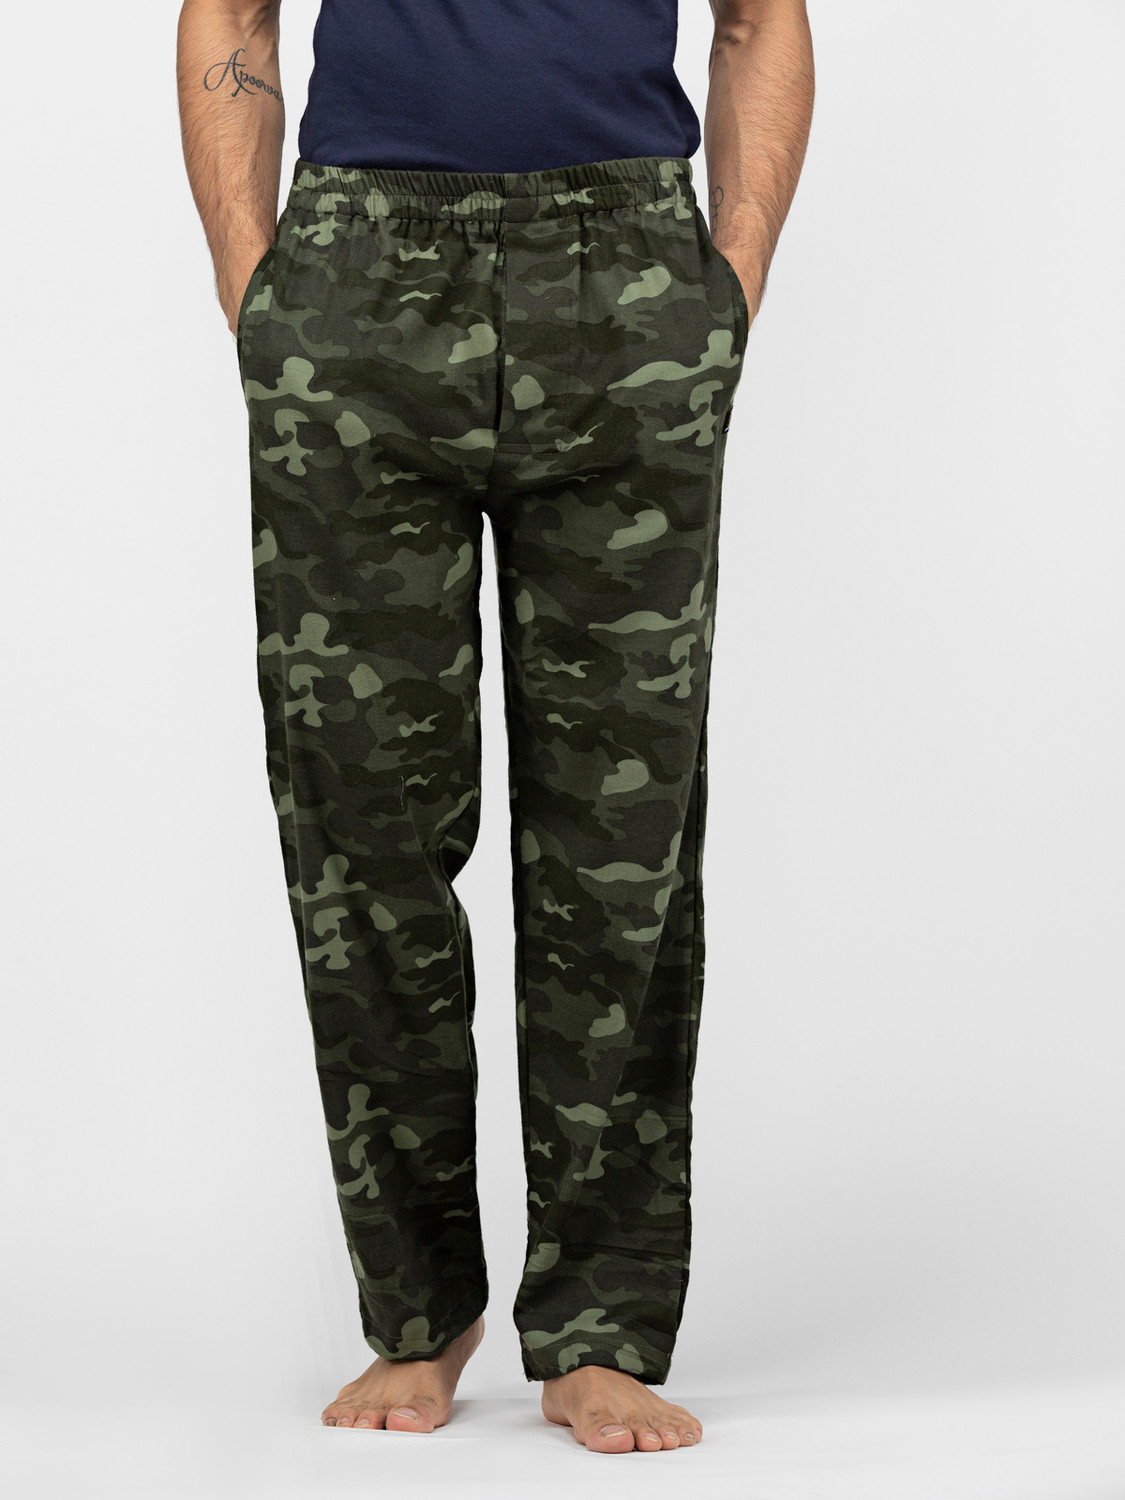 Camo Ammo Men's Flannel Pajamas